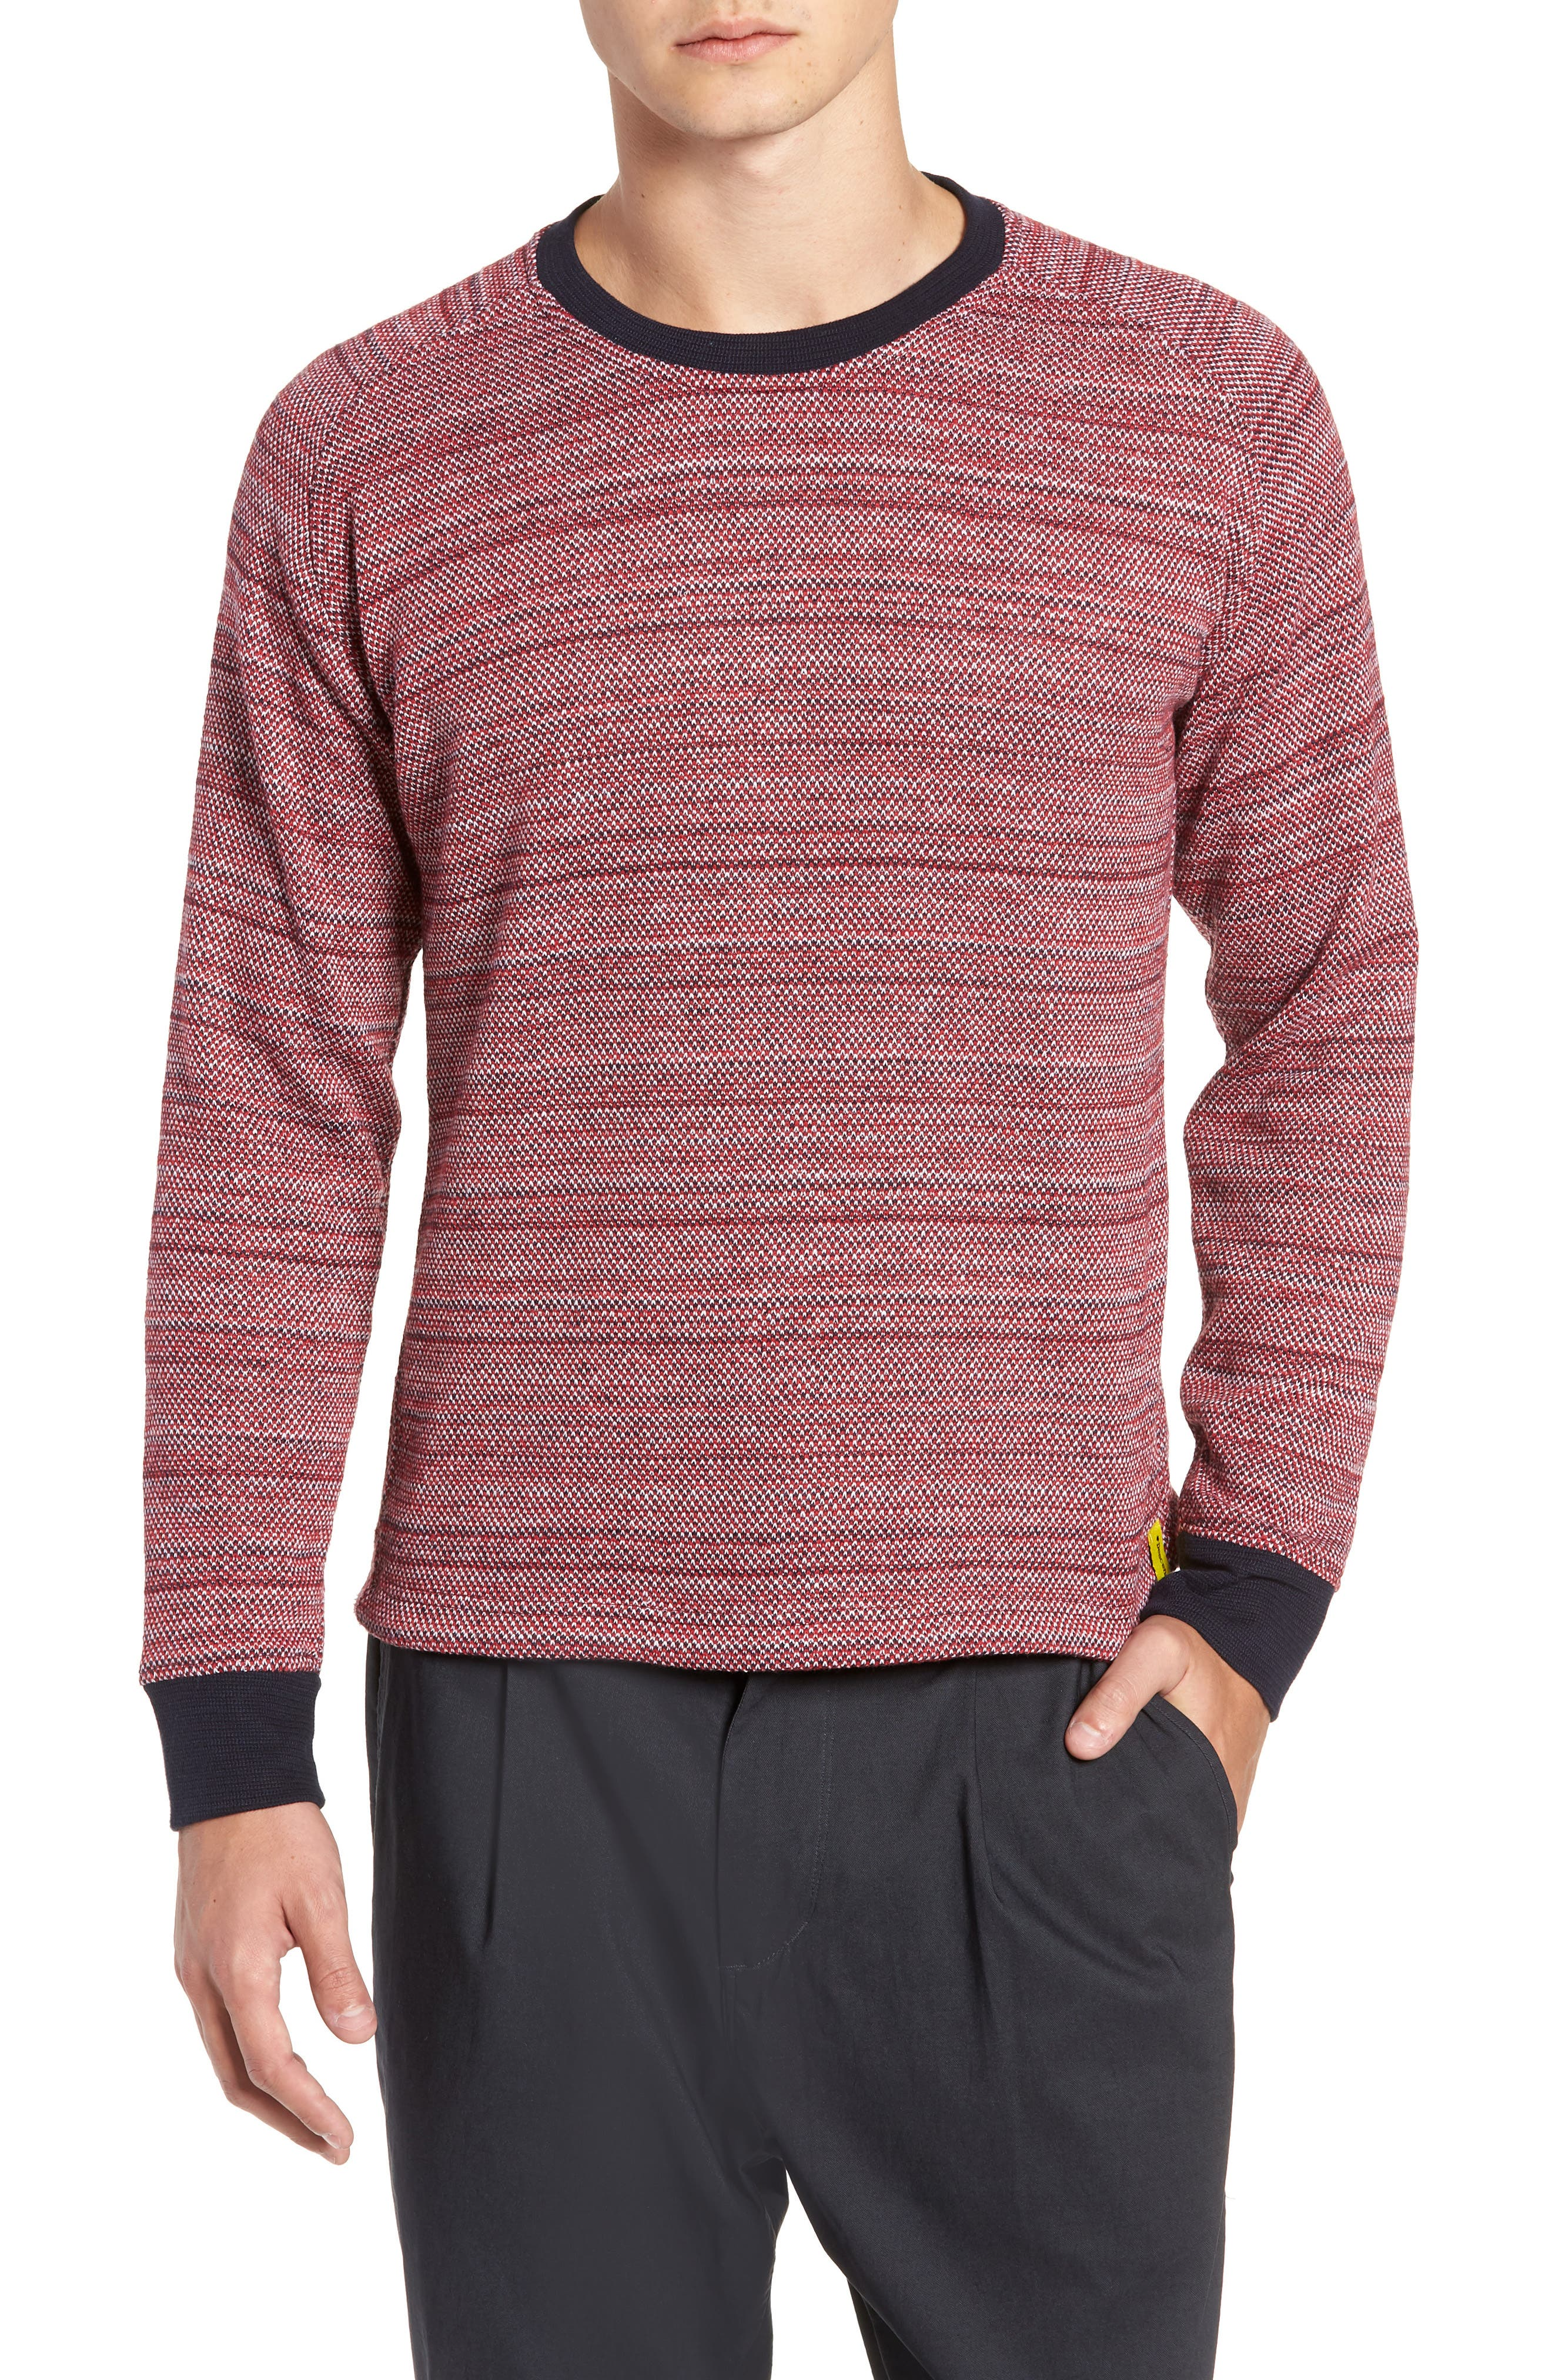 Inside Out Sweater,                             Main thumbnail 1, color,                             RED